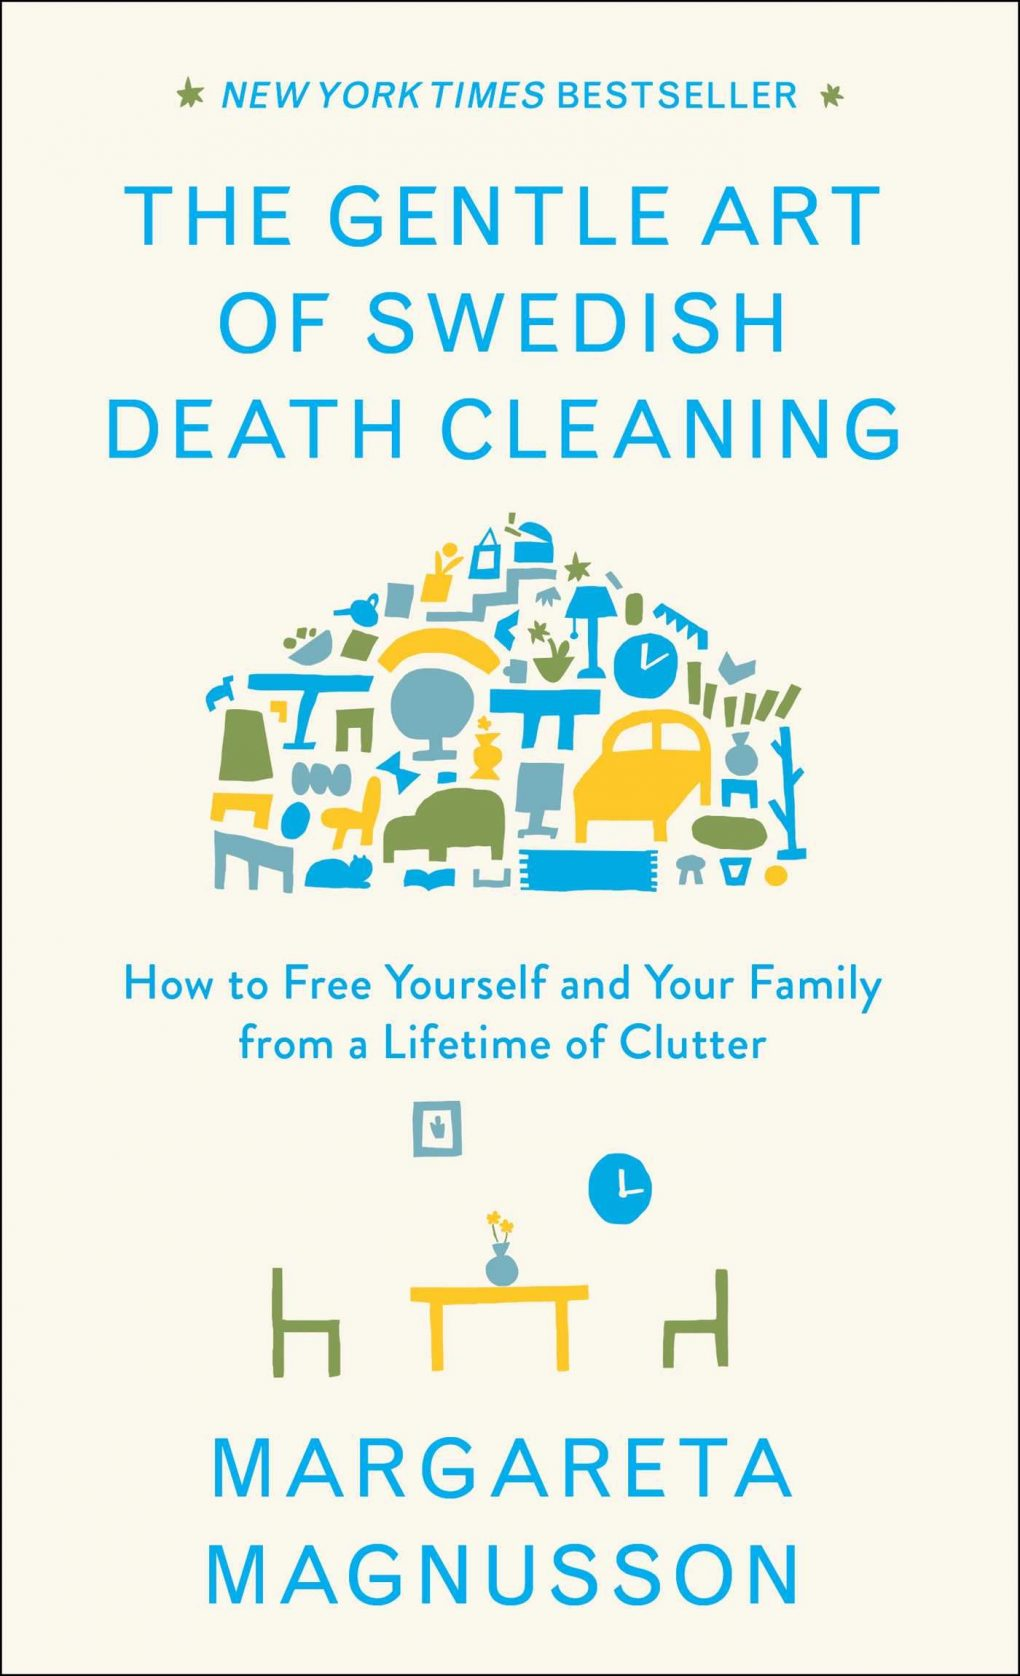 Death Cleaning: Whatever you call it, you'll be glad you did it